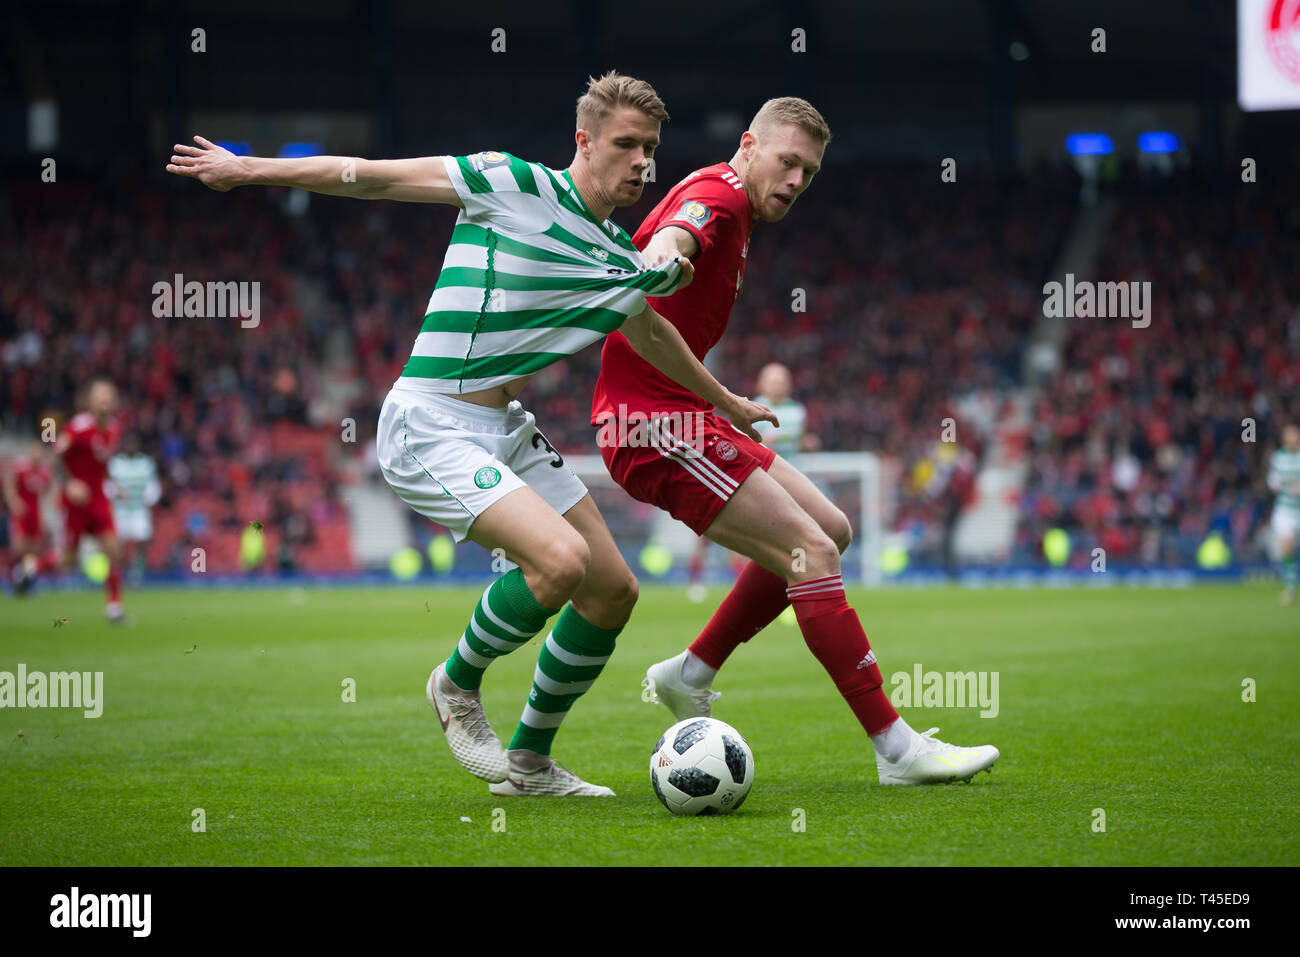 Hampden Park, Glasgow, UK. 14th Apr, 2019. Scottish Cup football, semi final, Aberdeen versus Celtic; Kristoffer Ajer of Celtic challenges for the ball with Sam Cosgrove of Aberdeen Credit: Action Plus Sports/Alamy Live News - Stock Image